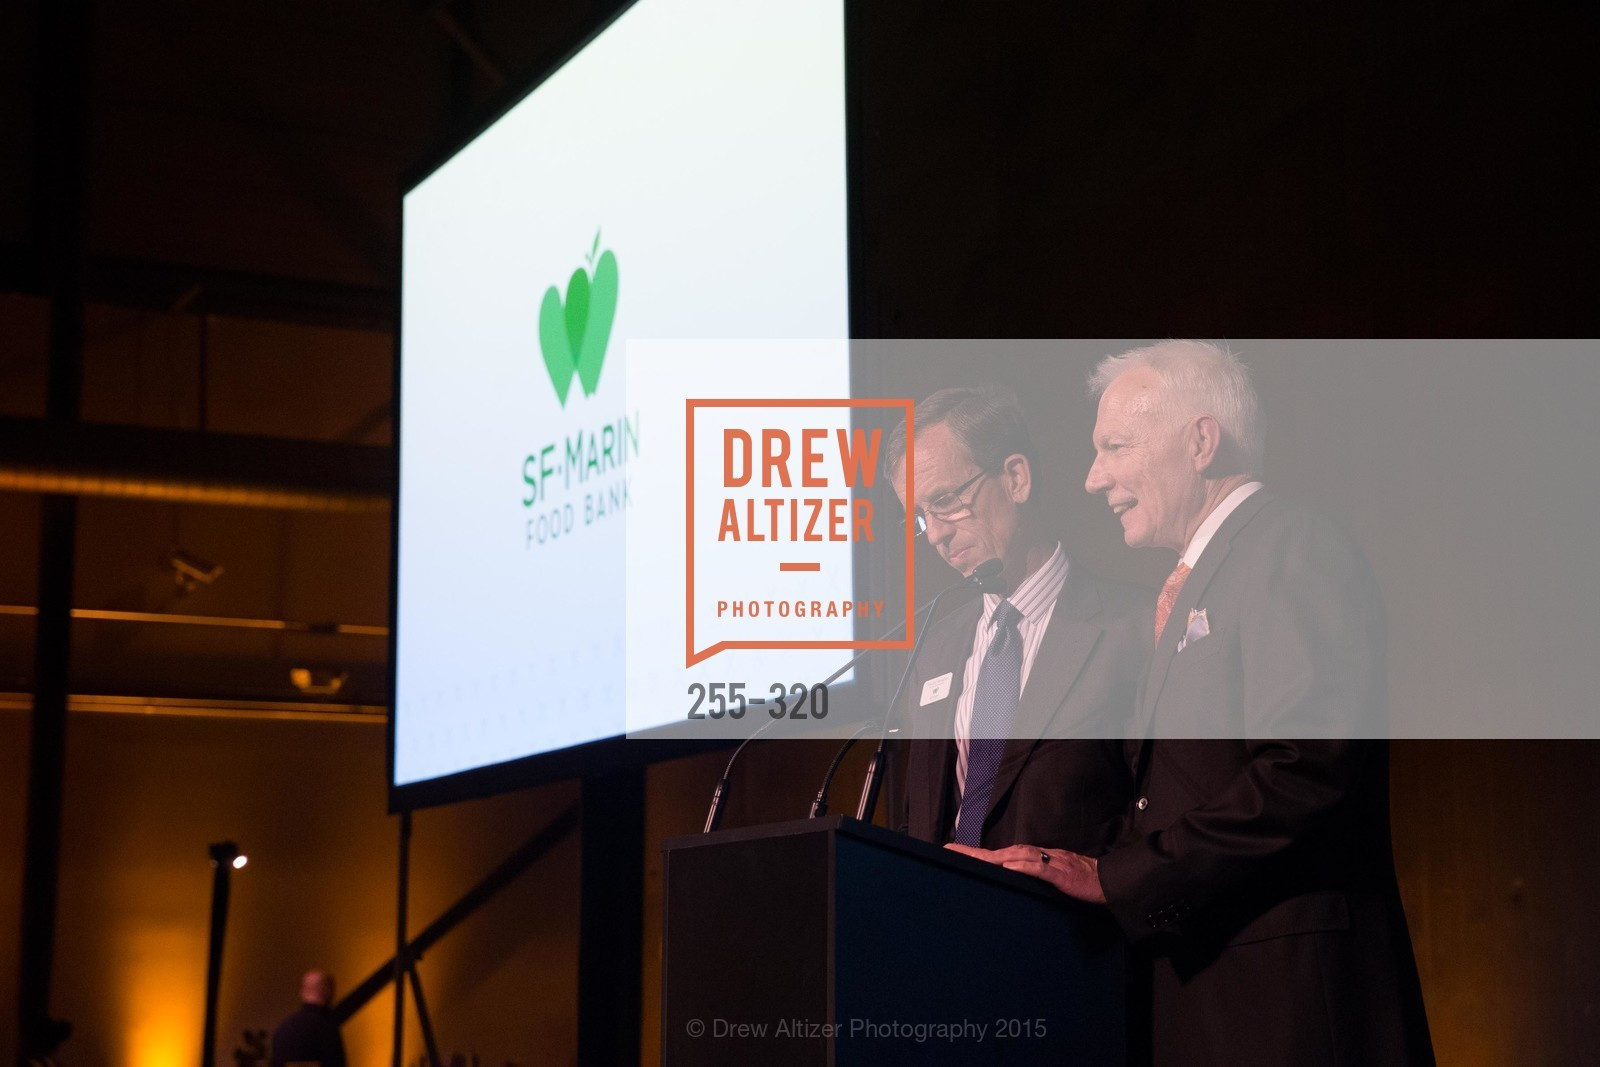 Tim Geraghty, Paul Ash, SF - Marin Food Bank Presents ONE BIG TABLE, SF- Marin Food Bank. 900 Pennsylvania Ave, September 26th, 2015,Drew Altizer, Drew Altizer Photography, full-service agency, private events, San Francisco photographer, photographer california